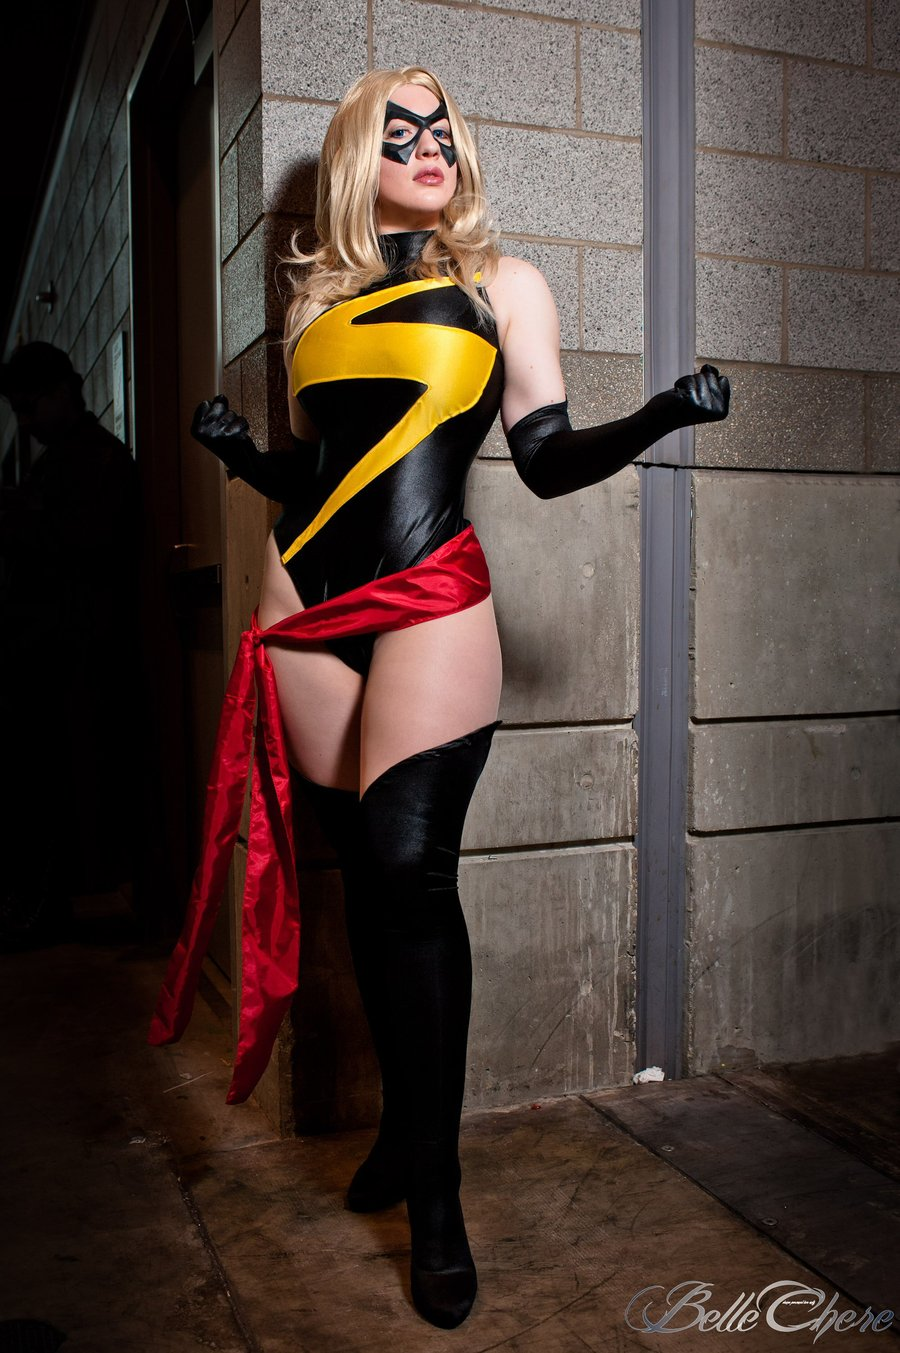 Belle Chere  is Ms. Marvel